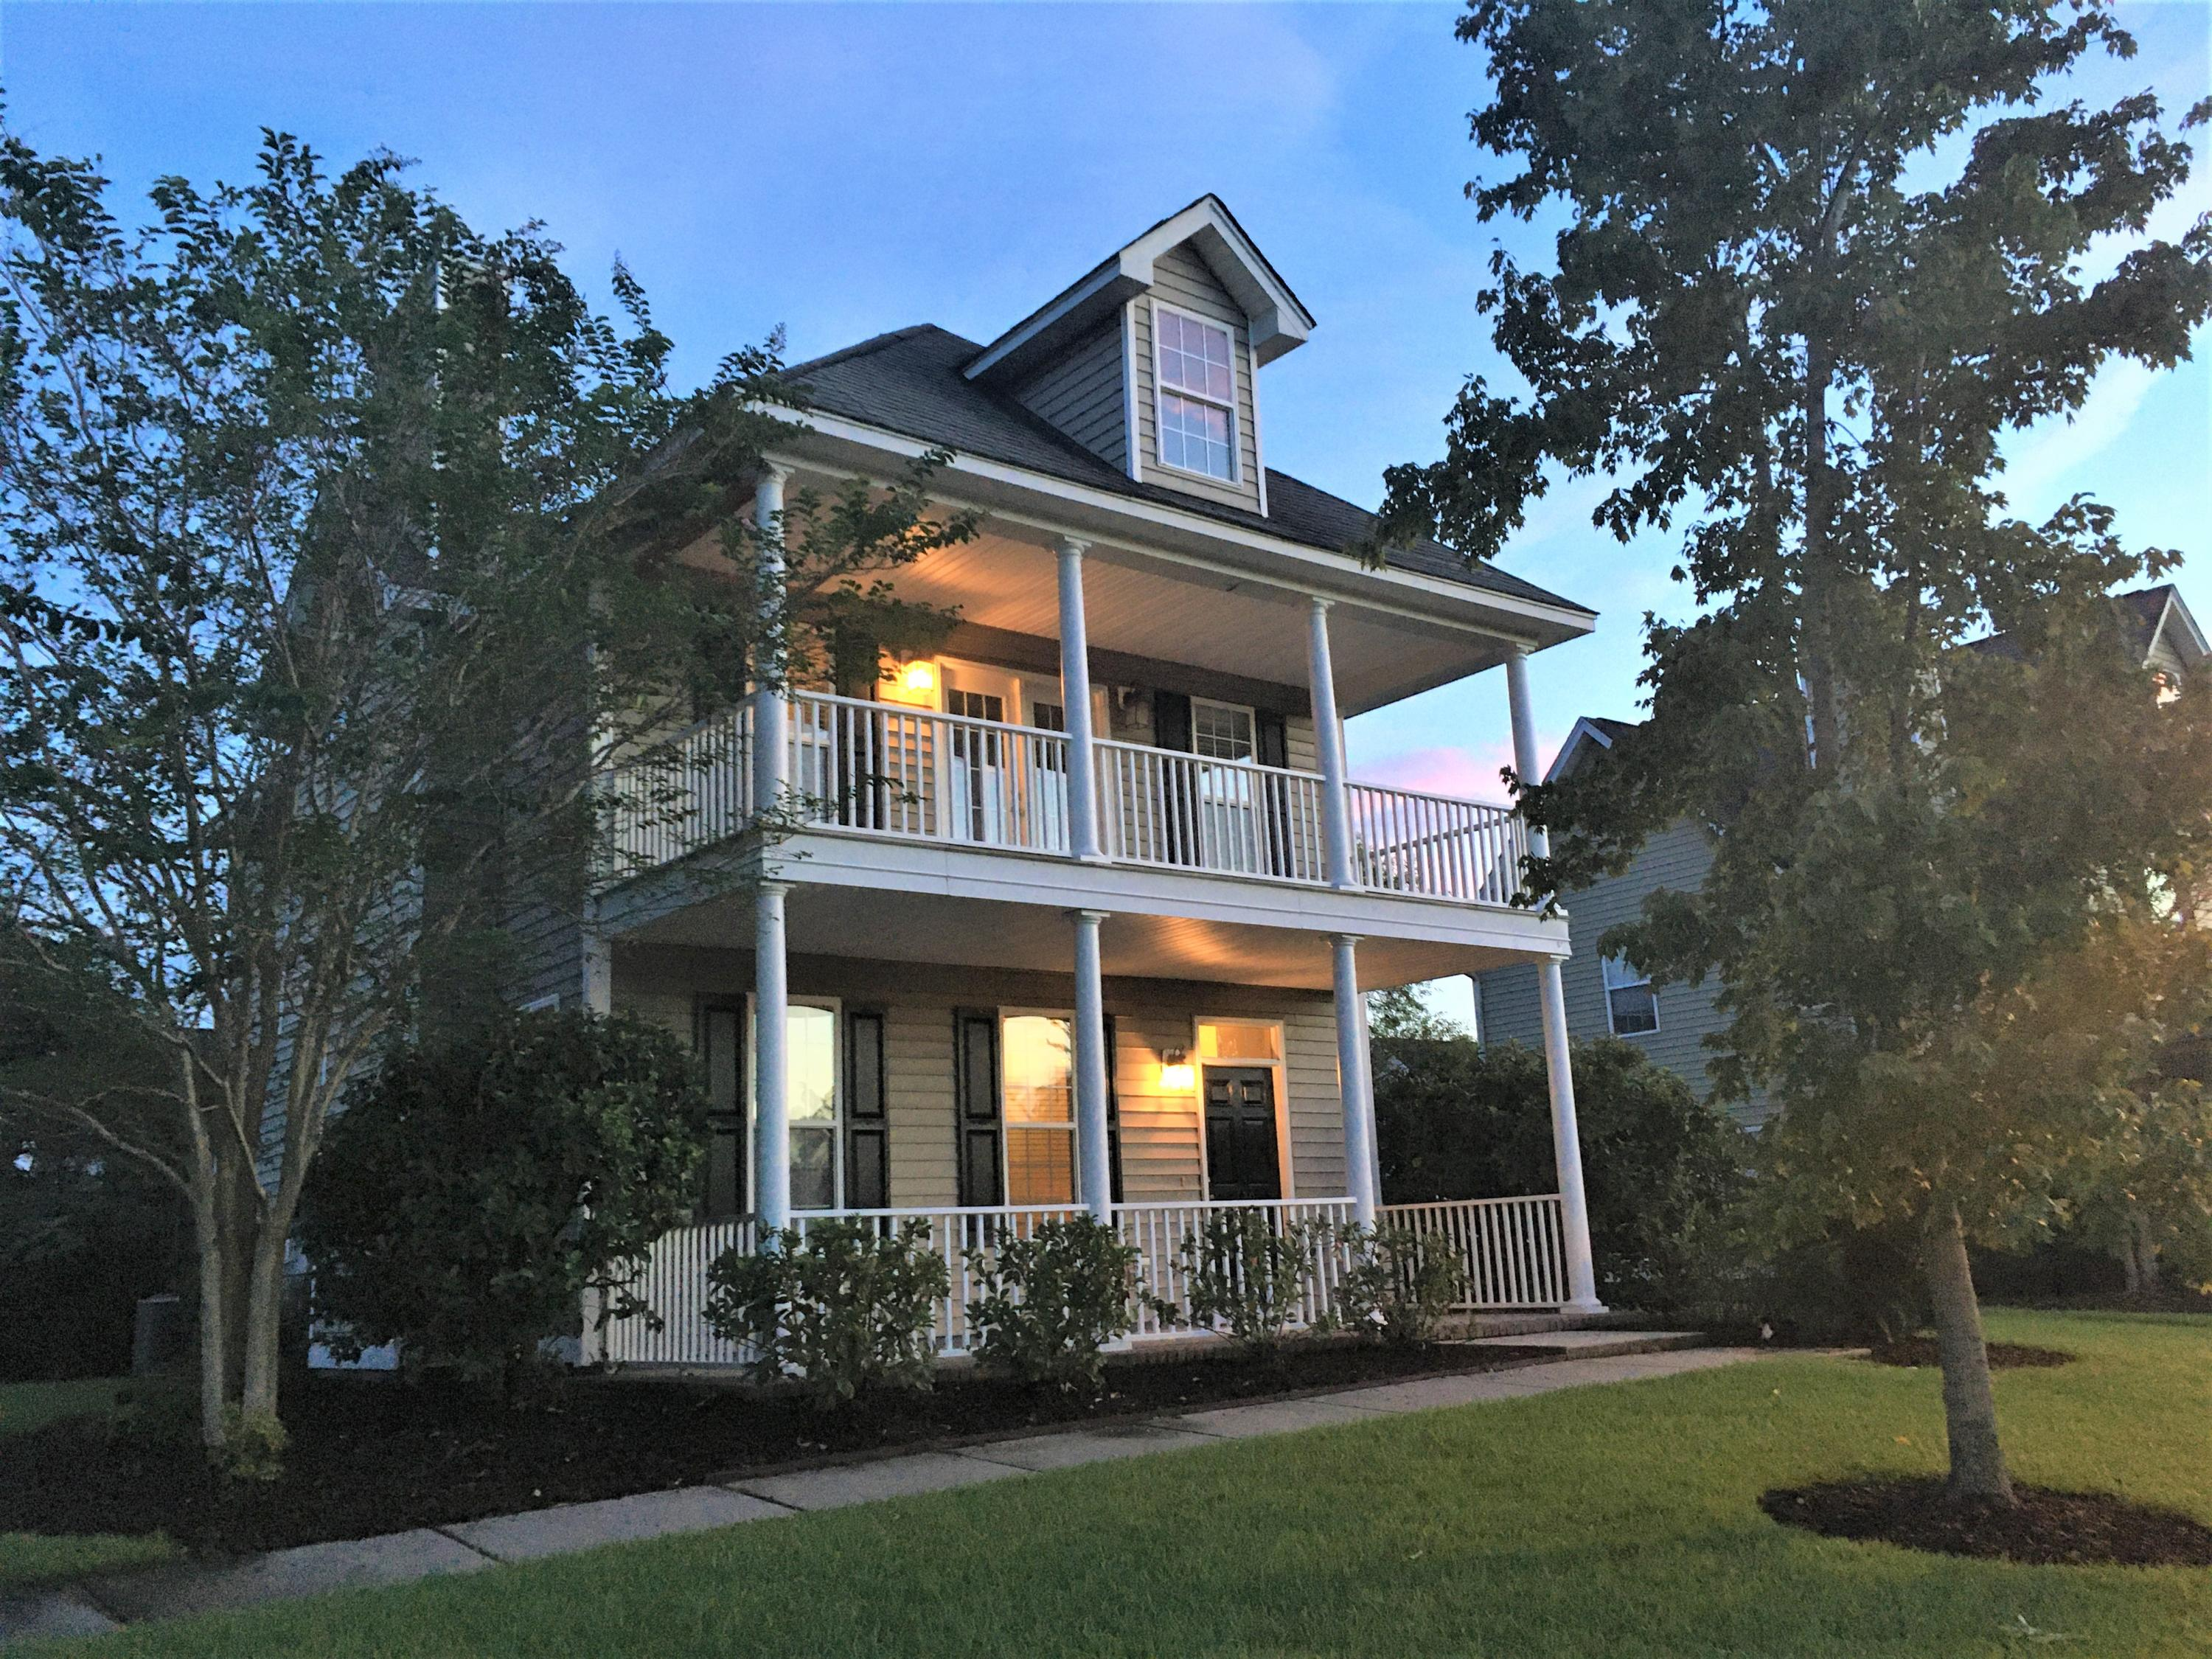 Heatherwoods Homes For Sale - 120 Full Moon, Ladson, SC - 43